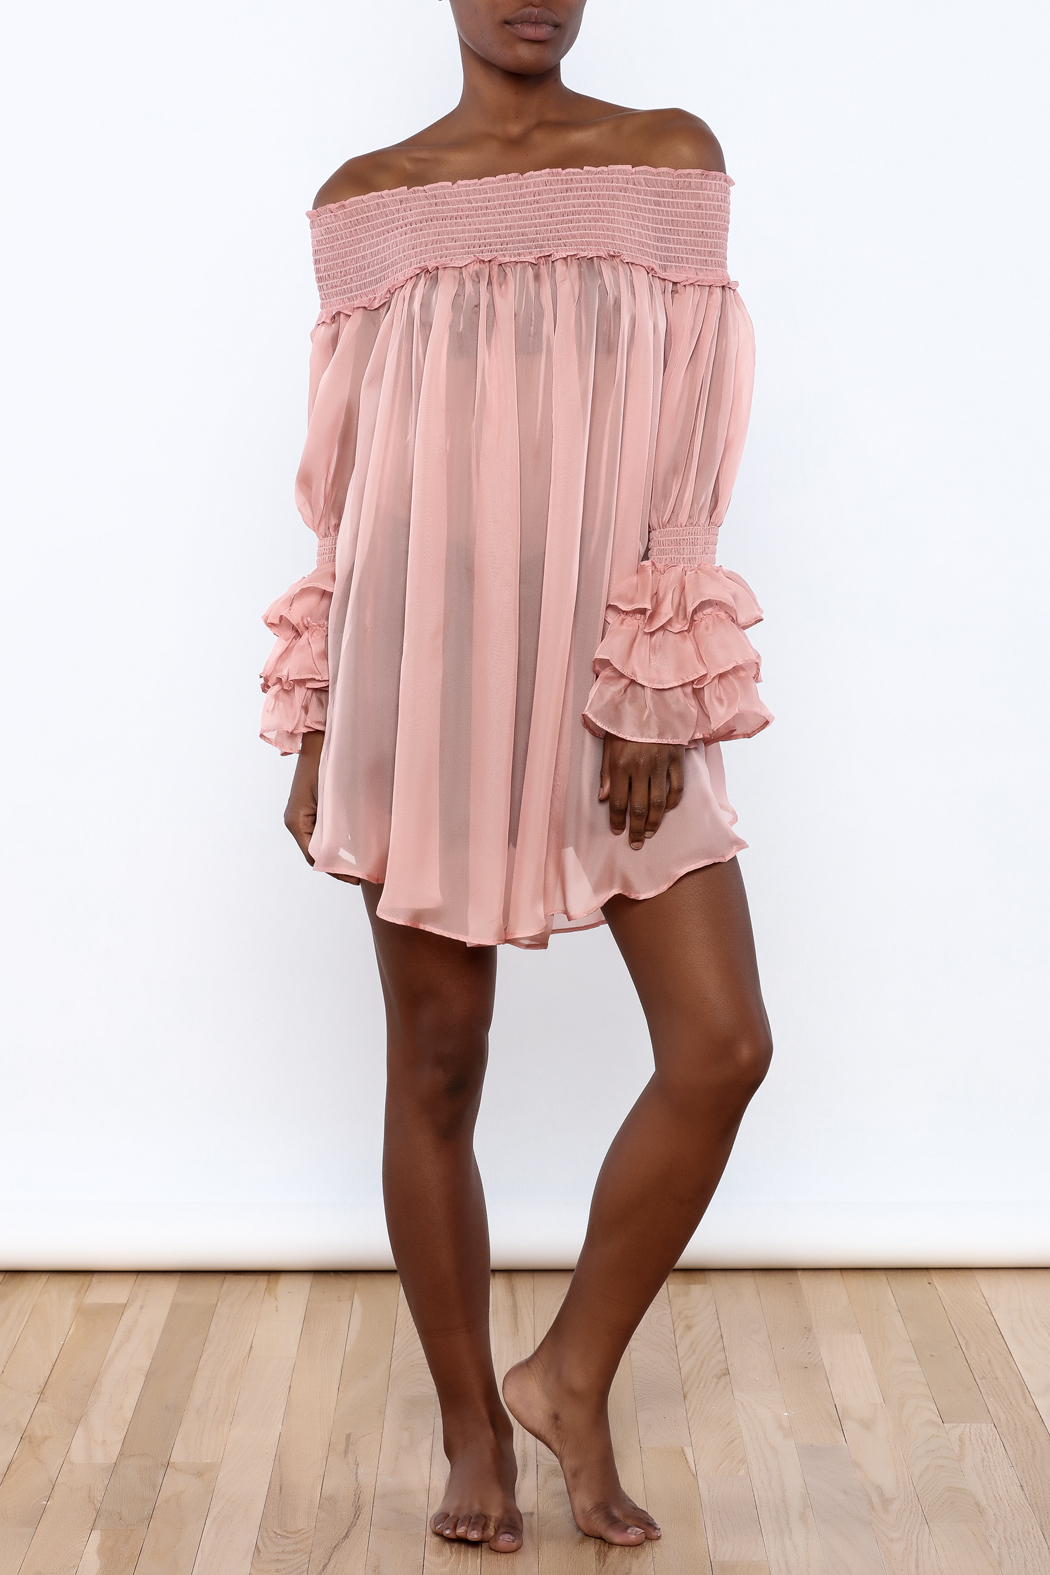 cq by cq Sheer Off Shoulder Top - Front Full Image